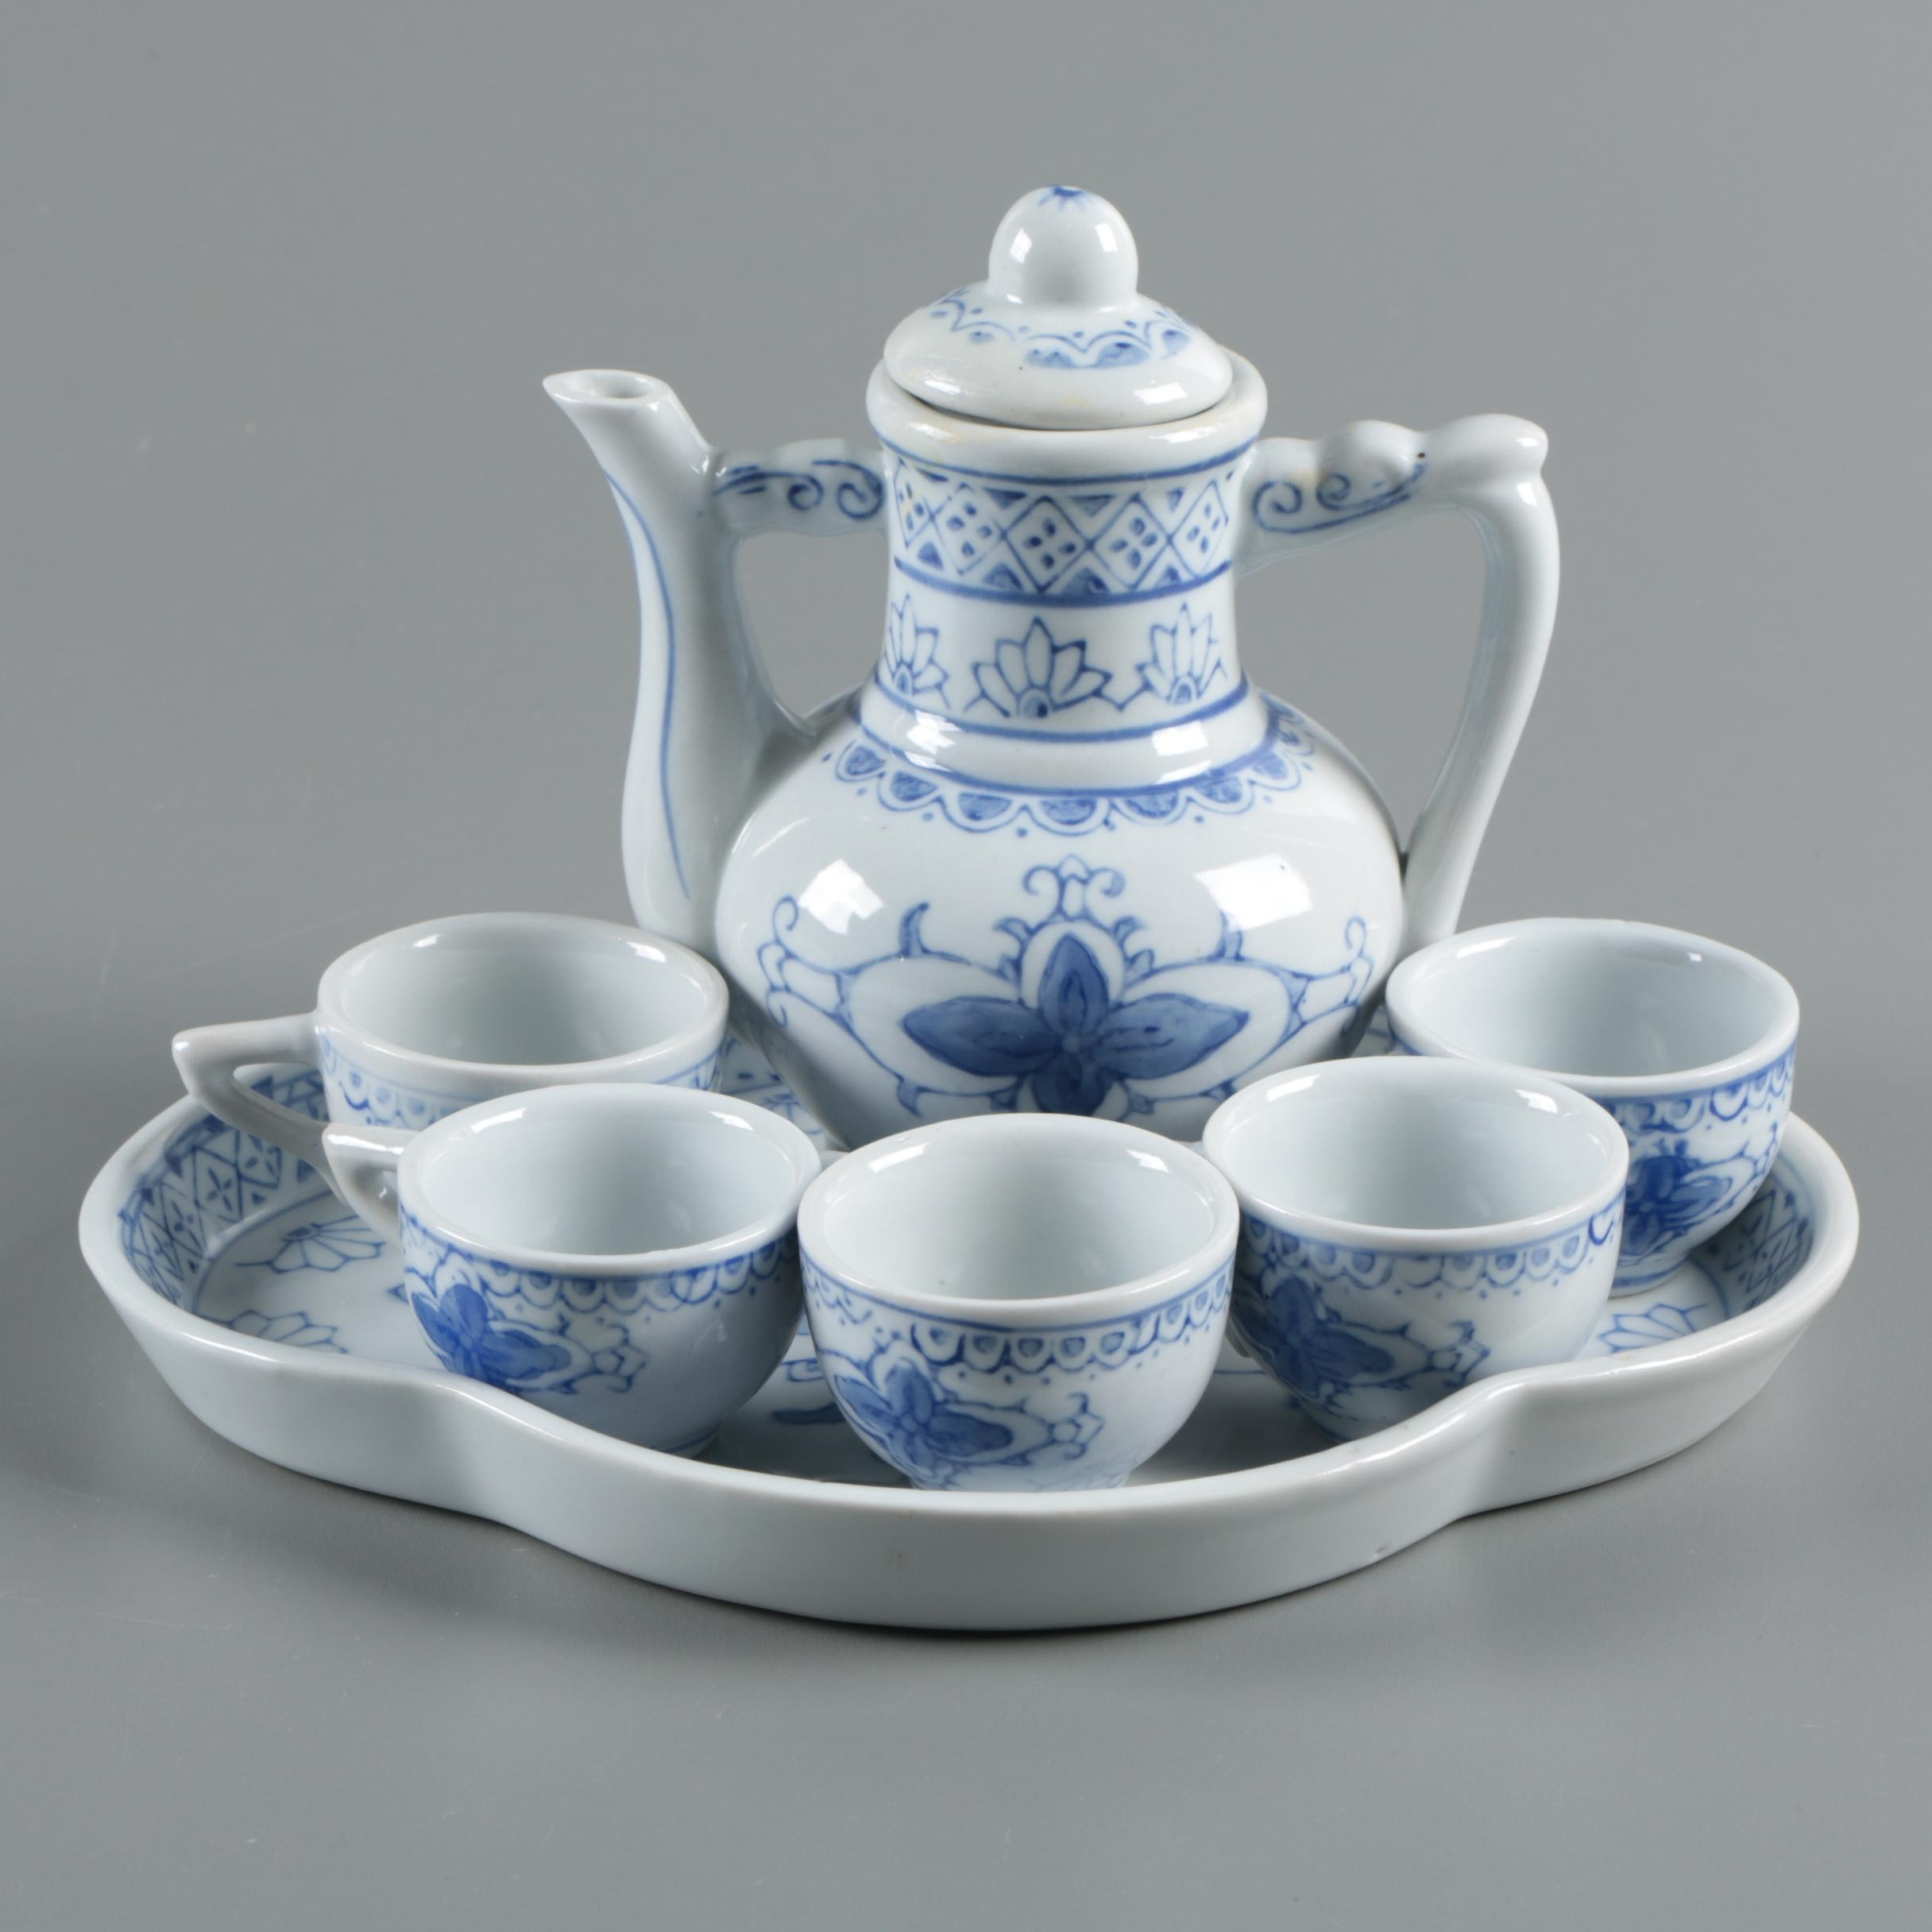 Chinese Porcelain Demitasse Tea Set with Blue and White Floral Pattern